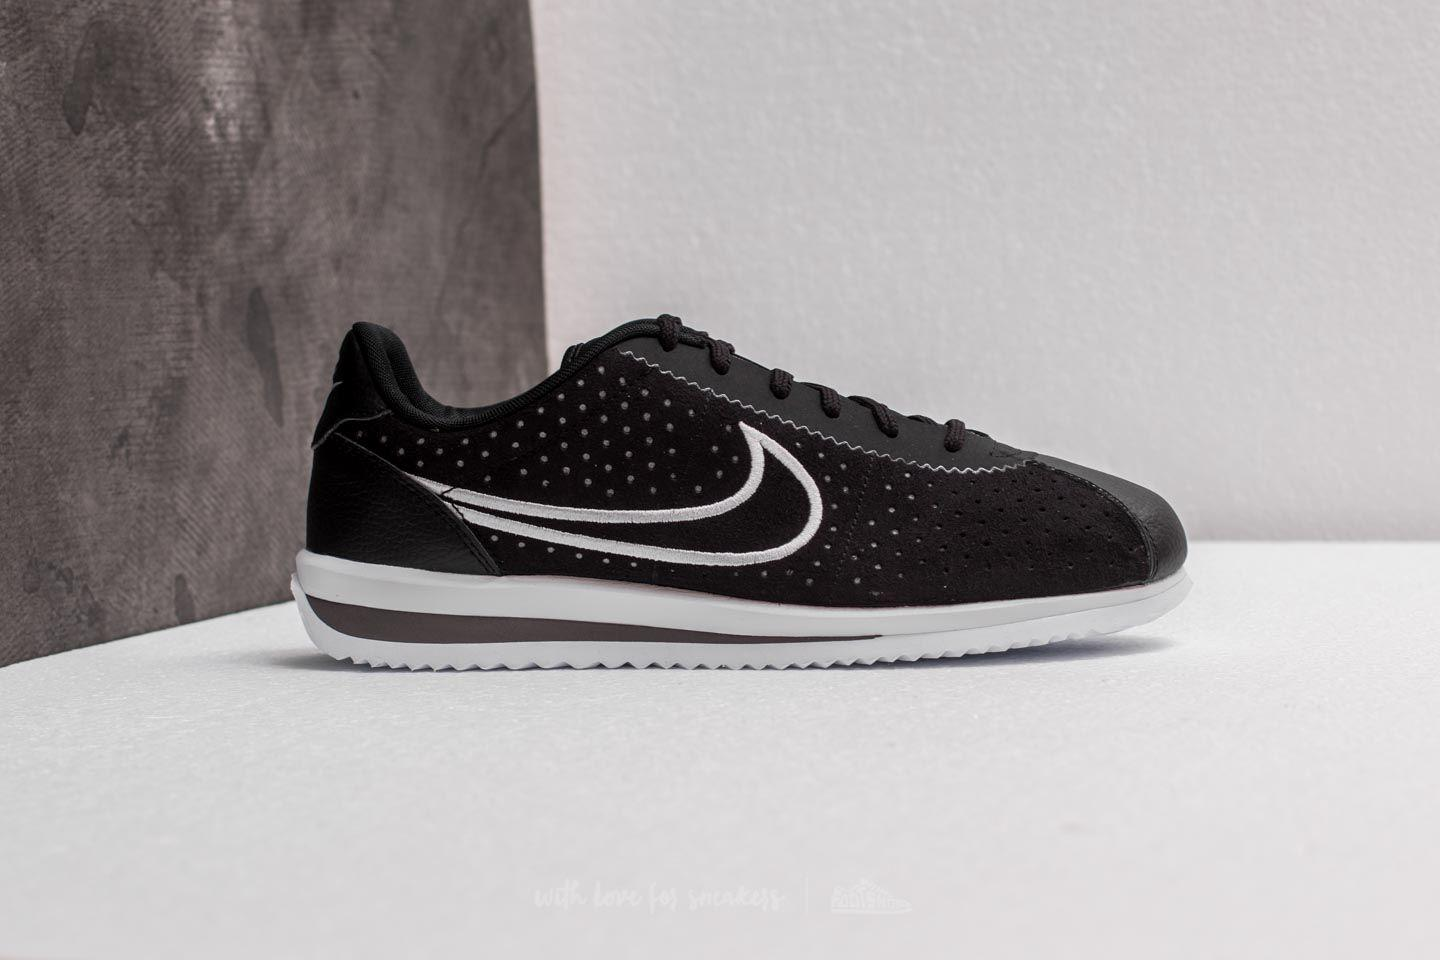 c2da687bcece ... ireland lyst nike cortez ultra moire 2 black white dark grey for men  141b6 5f379